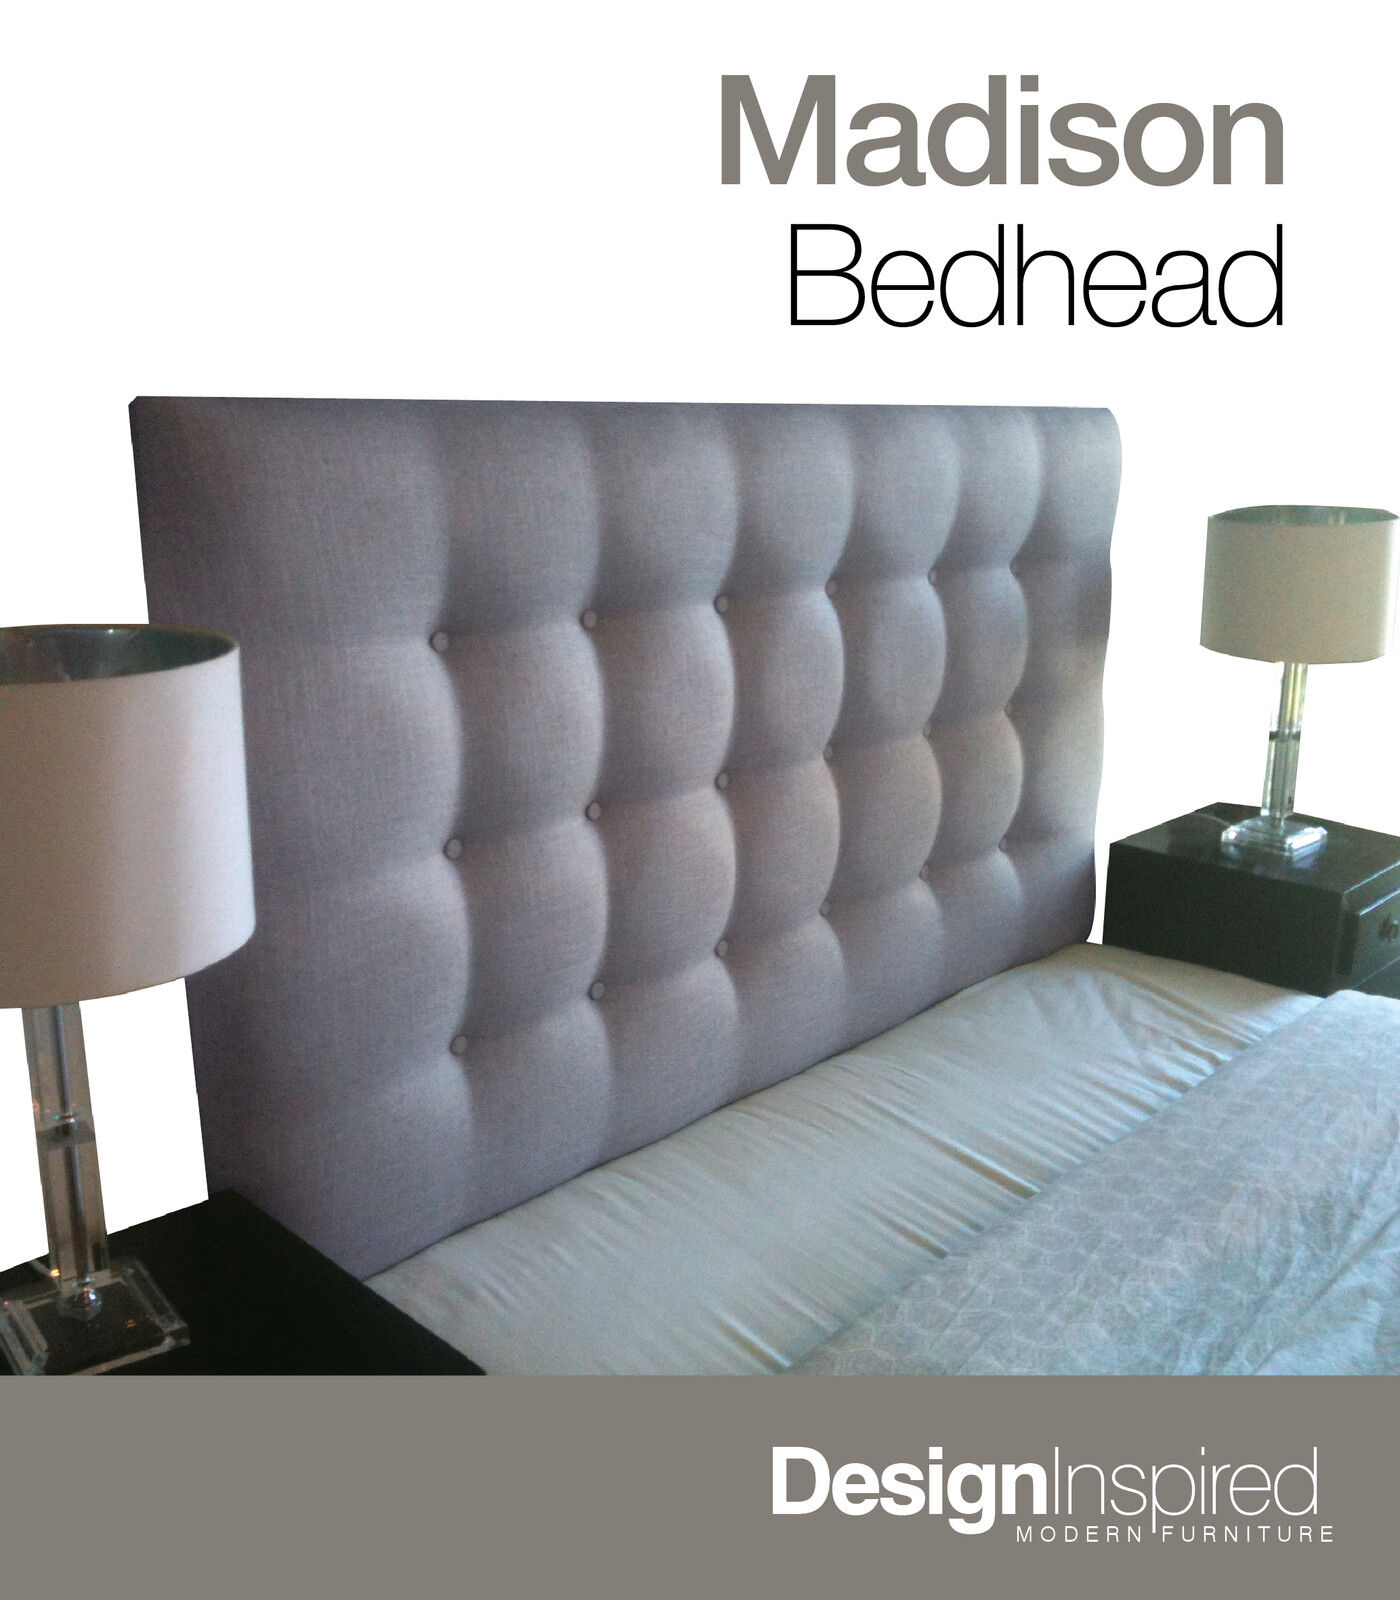 Headboard For Ensemble Madison Deluxe Upholstered Bedhead Headboard For Queen